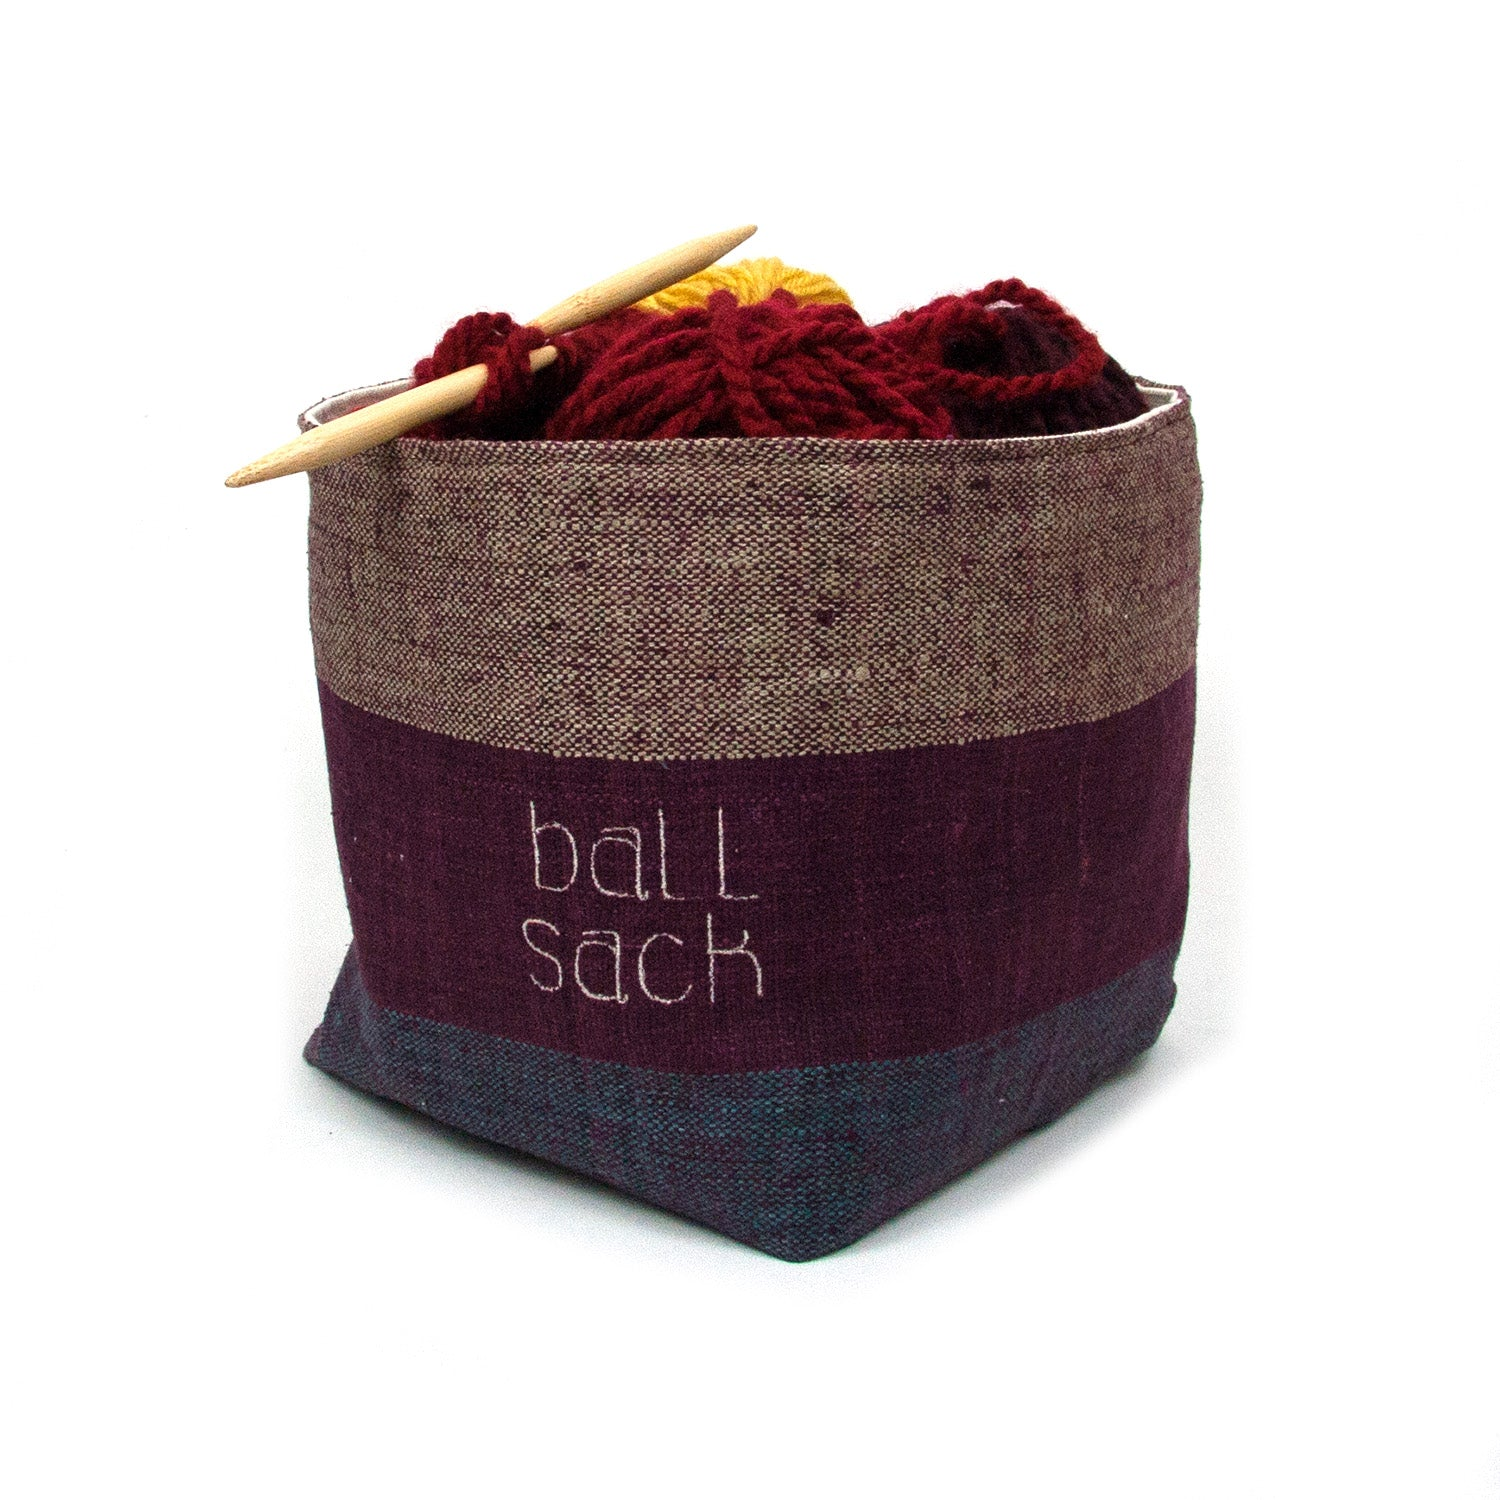 Ball Sack Basket